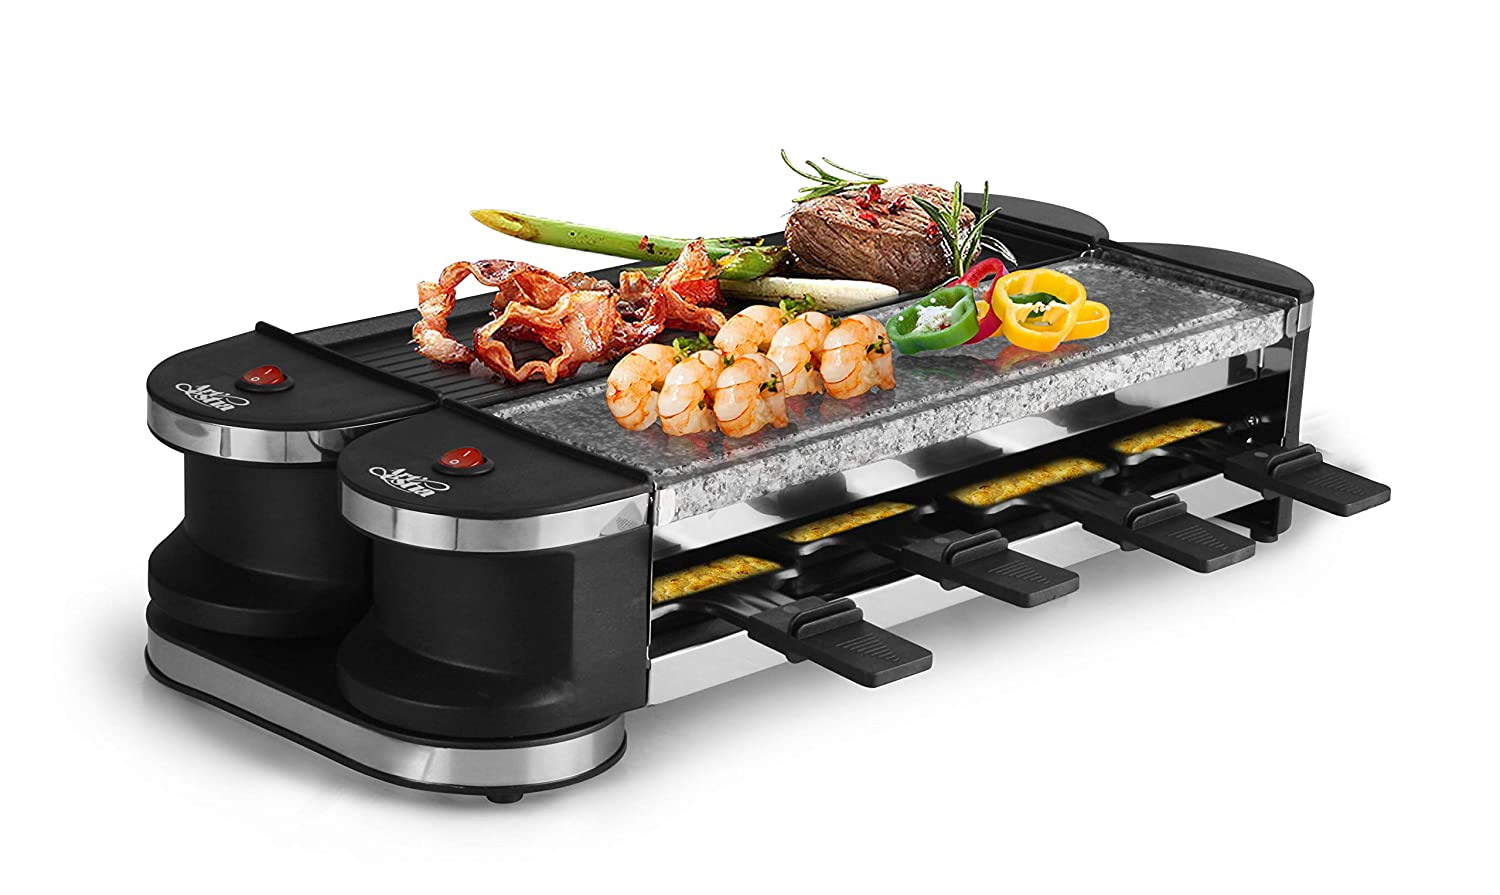 Artestia Electric Dual Raclette Grill with Aluminum Reversible Grill Plate and High Density Granite Grill Stone, Easy Setup in 360 Rotation, Serve whole family Stone and Reversible Aluminum Plate